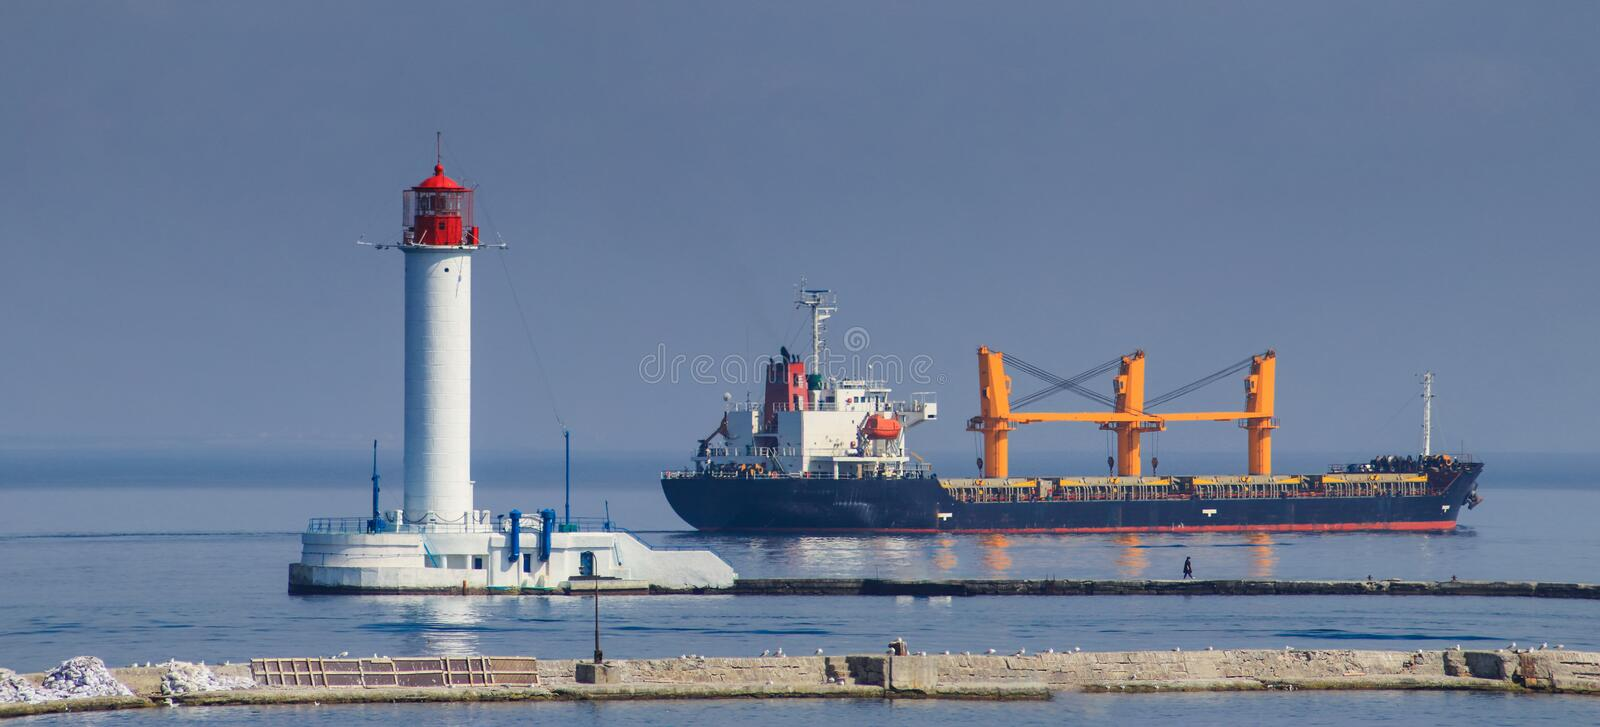 Cargo port Marine cargo ship loaded with shipping royalty free stock image